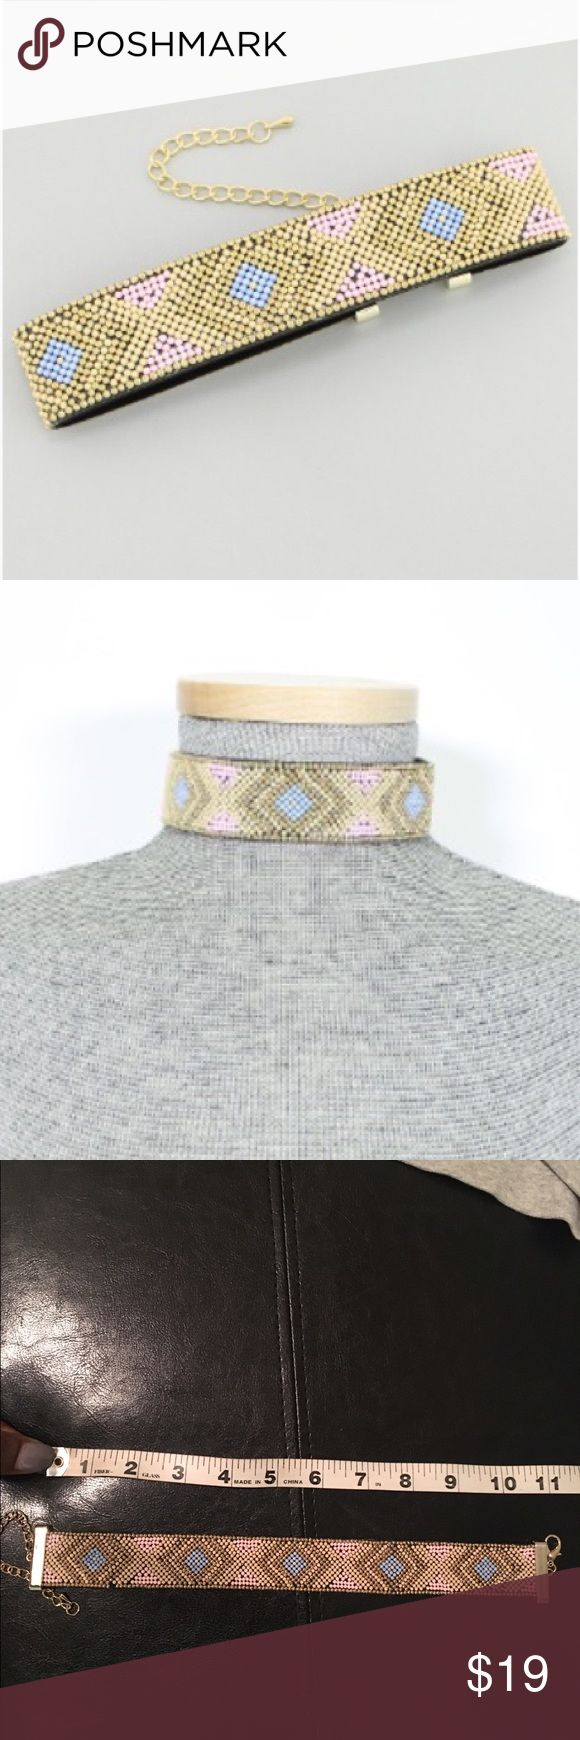 Pastel Aztec tribal pattern choker This beaded choker is a great way to stay on trend. beaded choker features an aztec style pattern.  The necklace has gold plated clasps at either end.  11in. X 1.25in. Jewelry Necklaces